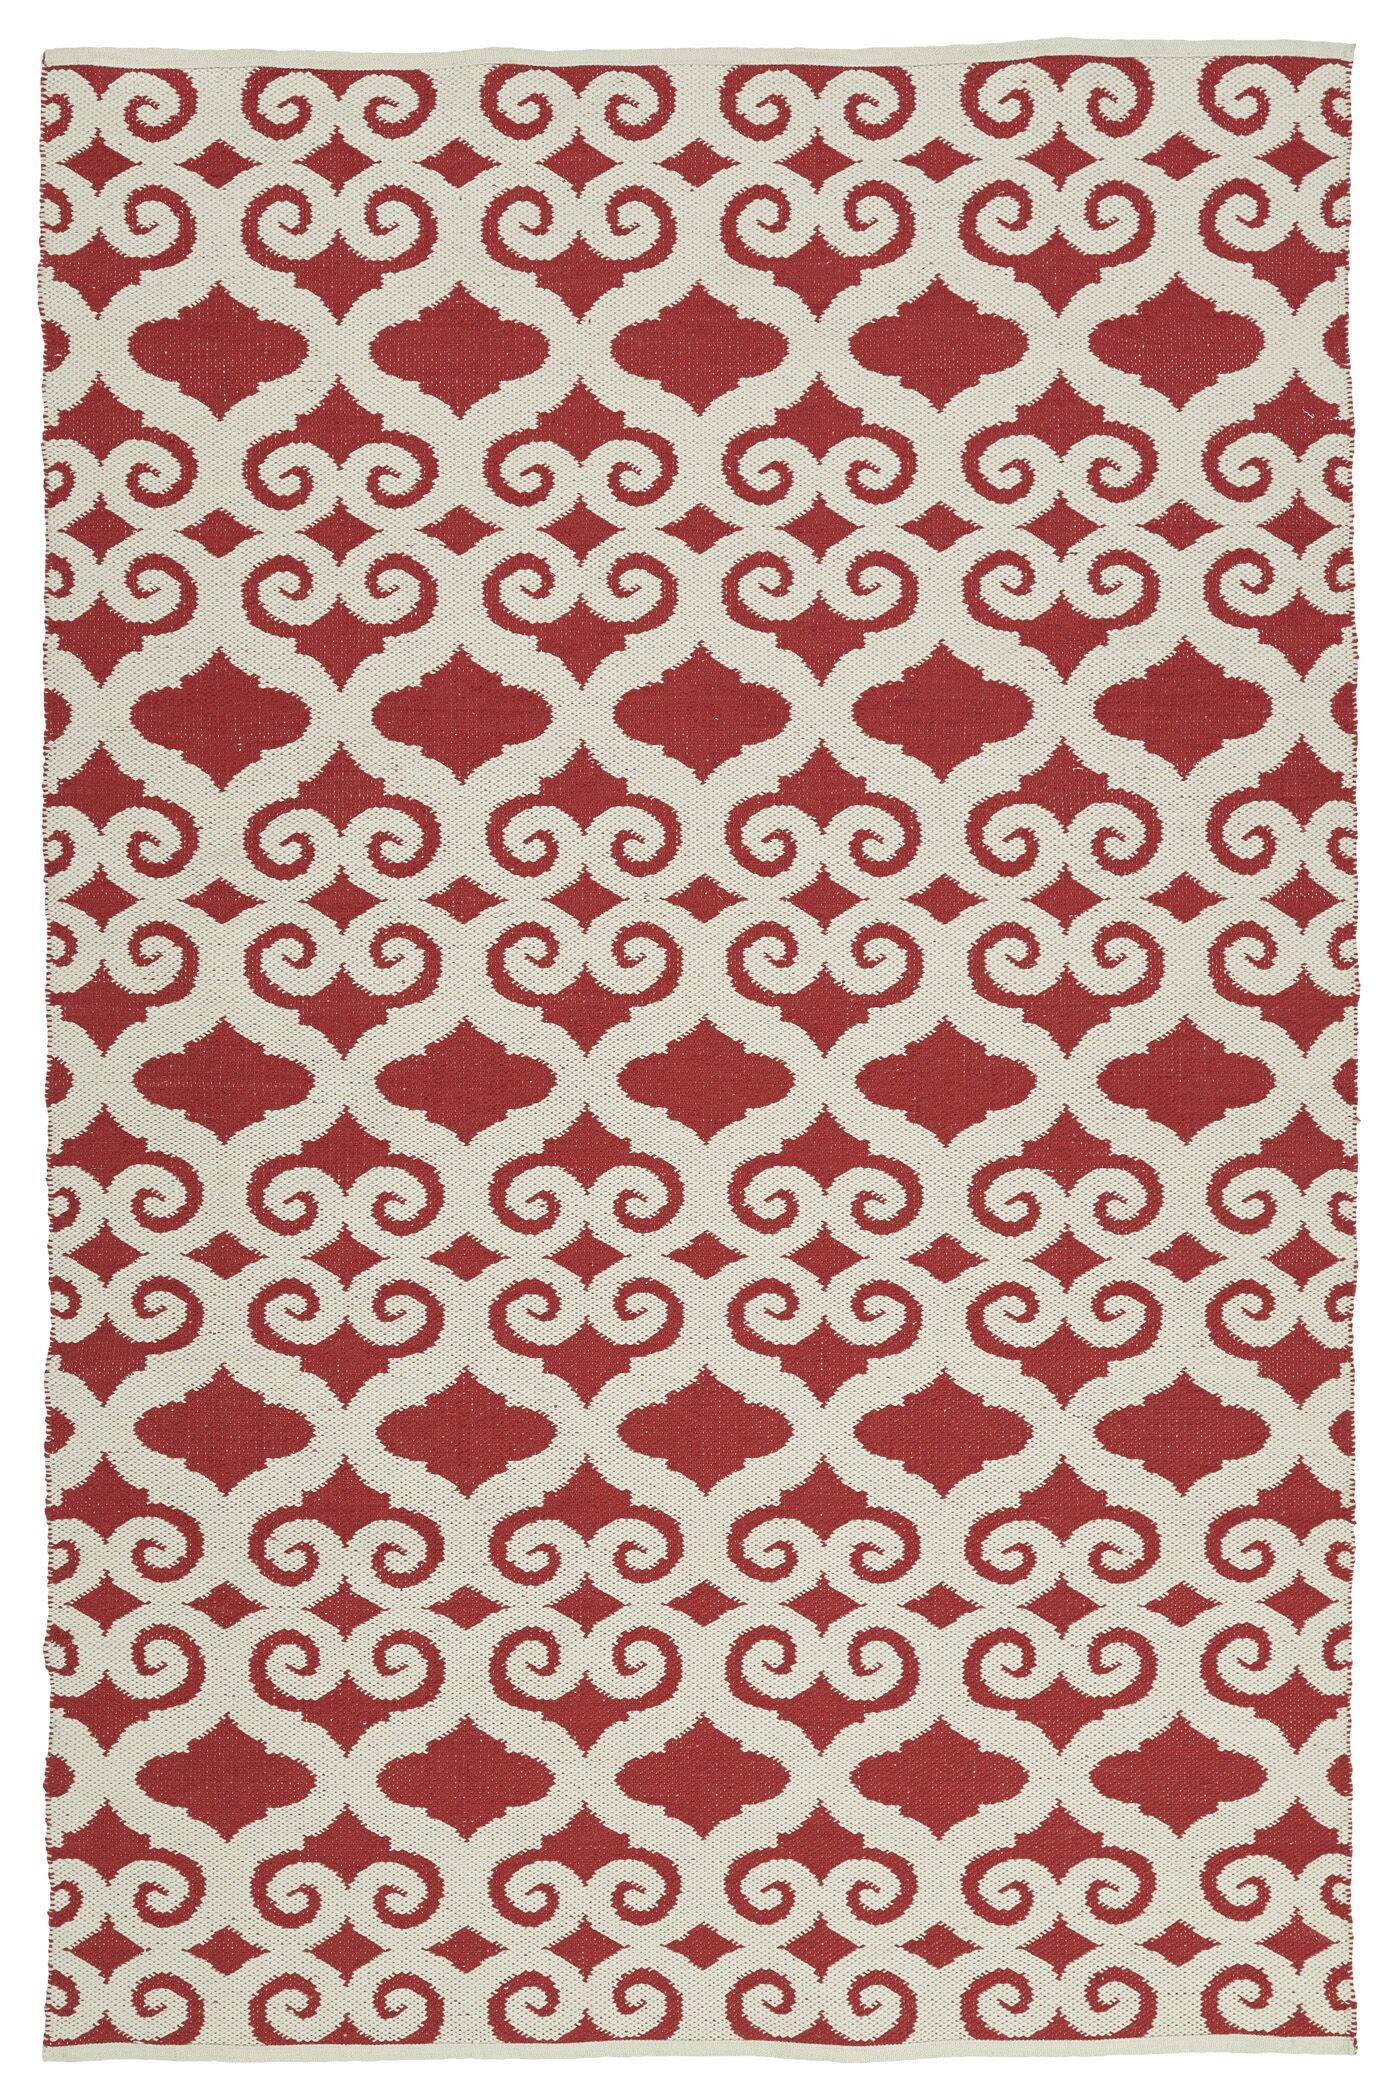 Covington White/Red Indoor/Outdoor Area Rug Rug Size: Rectangle 9' x 12'